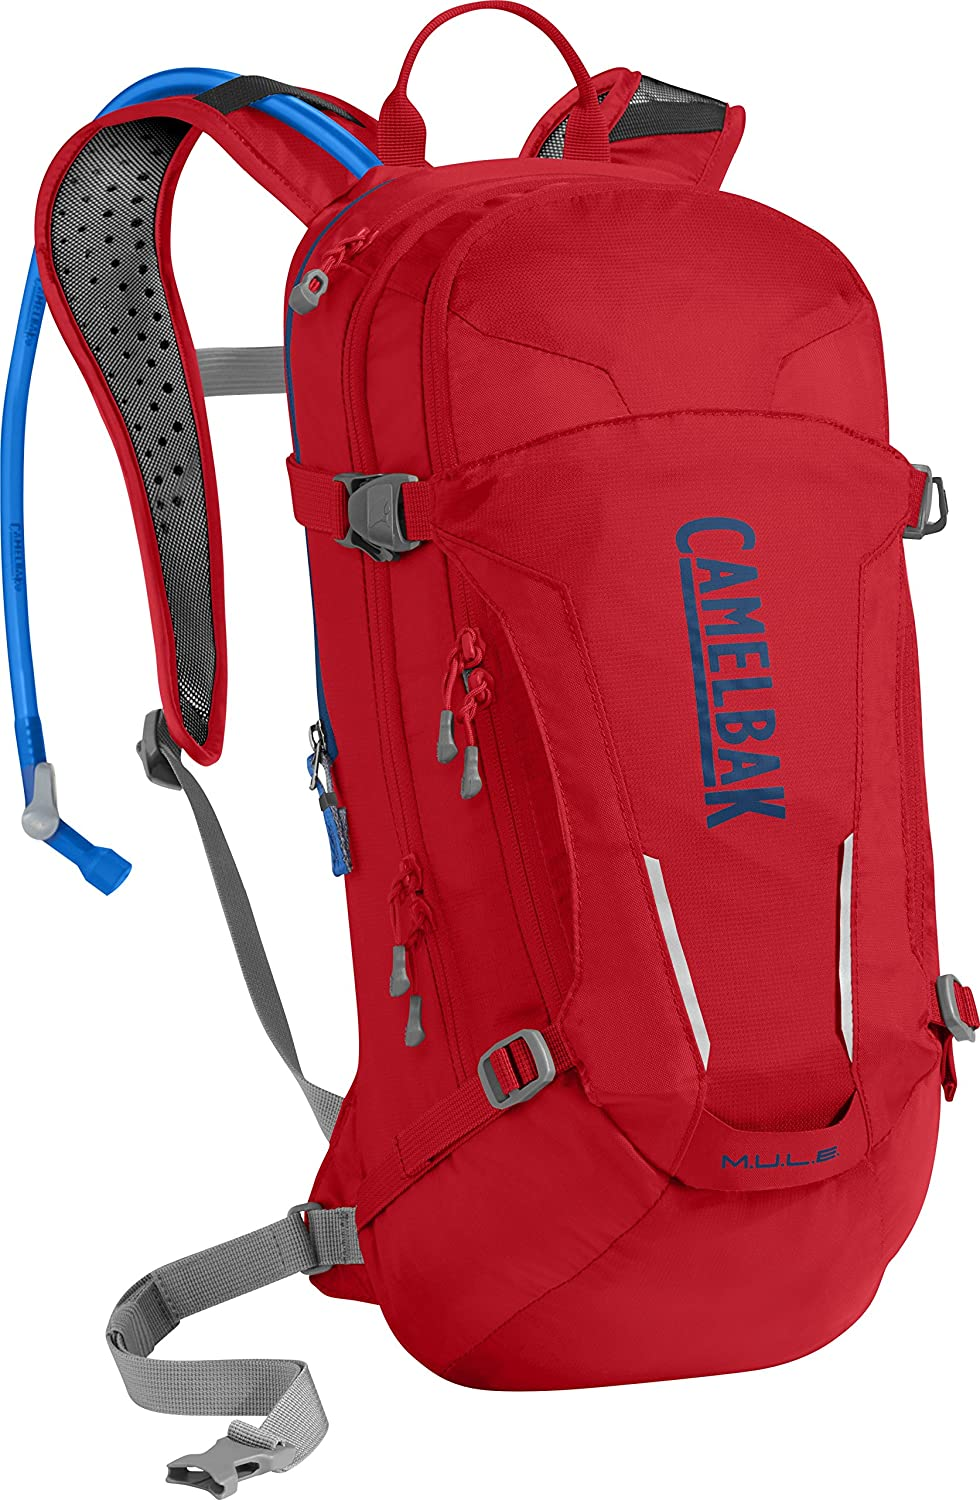 CamelBak Mountain Biking Hydration Pack